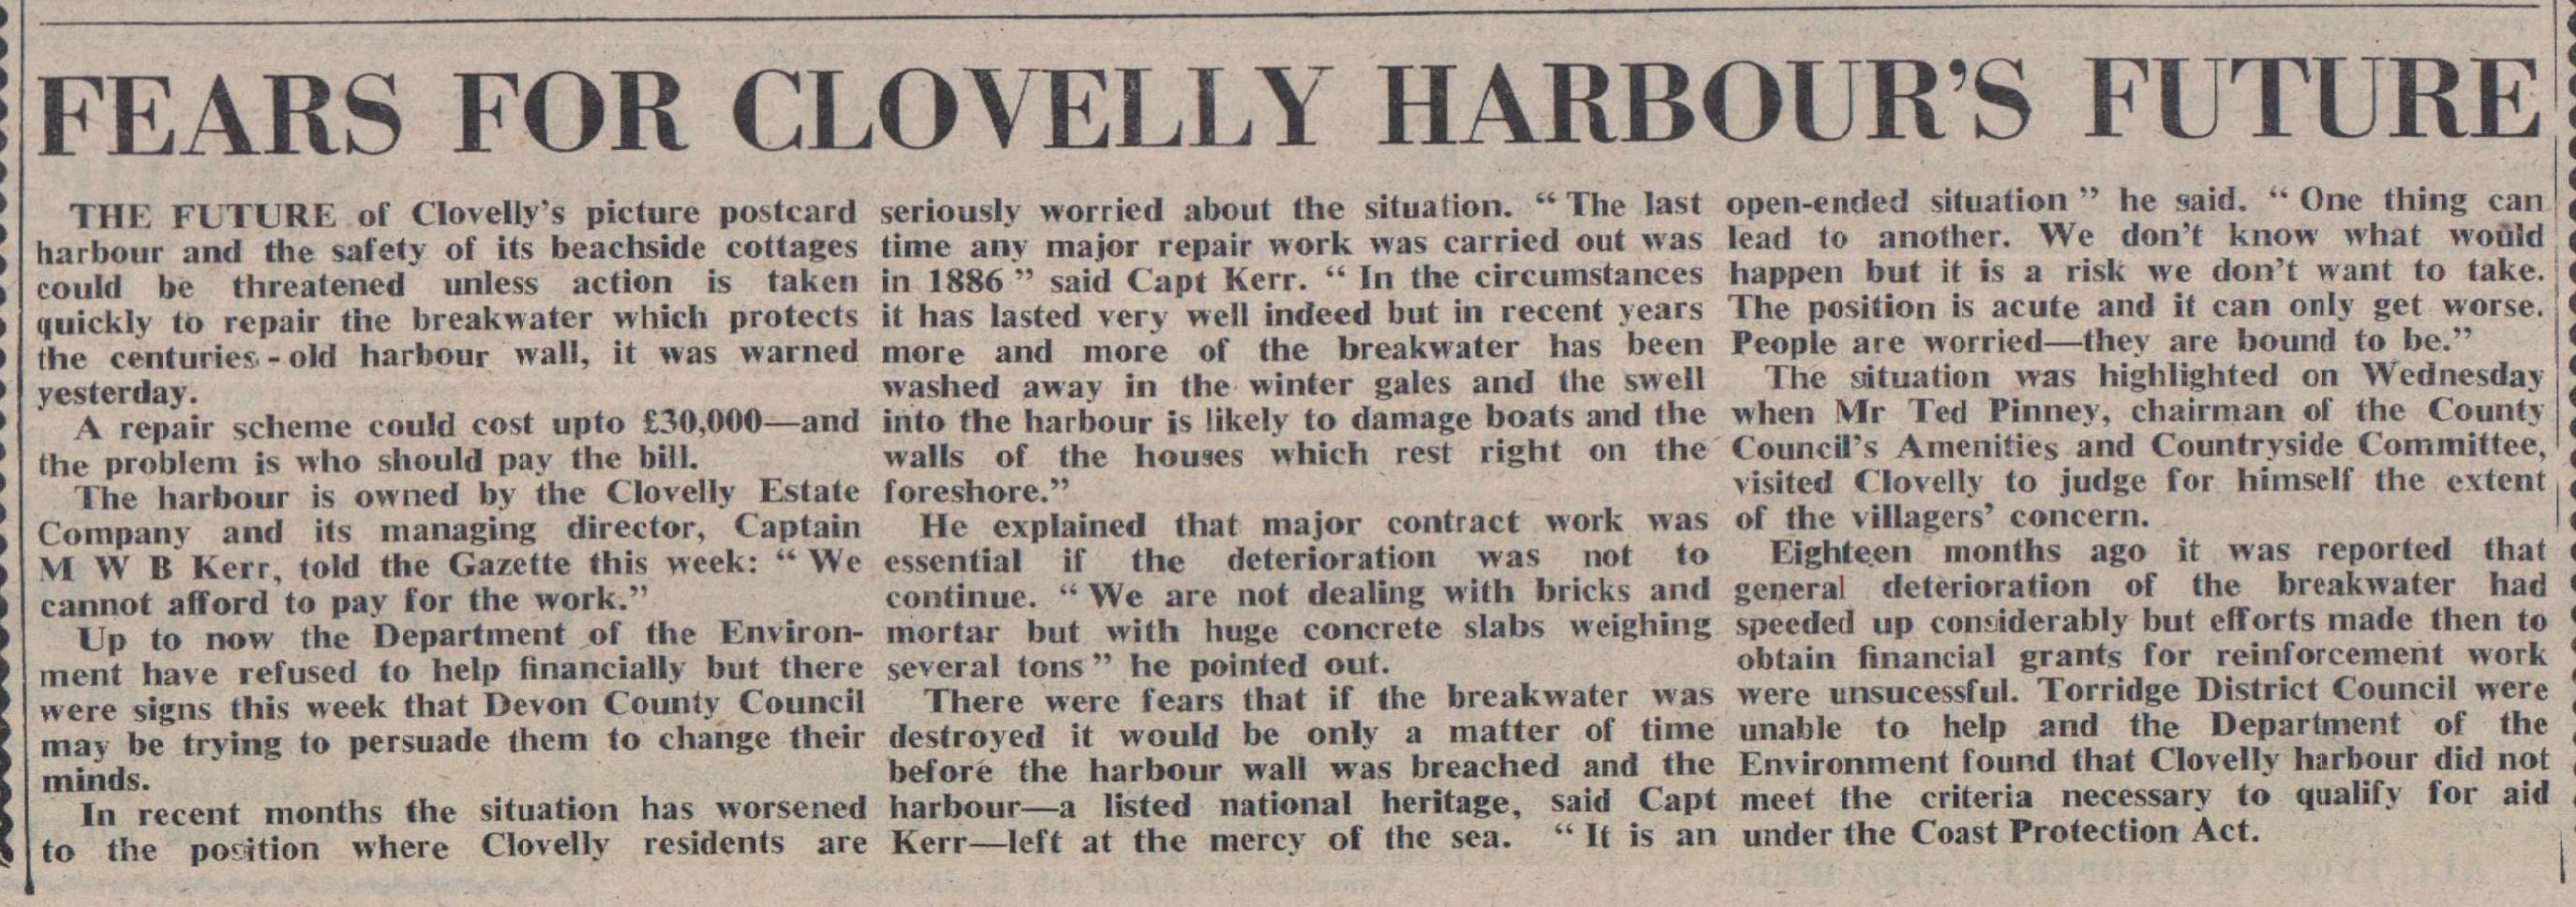 11.3.1977 Clovelly Harbour